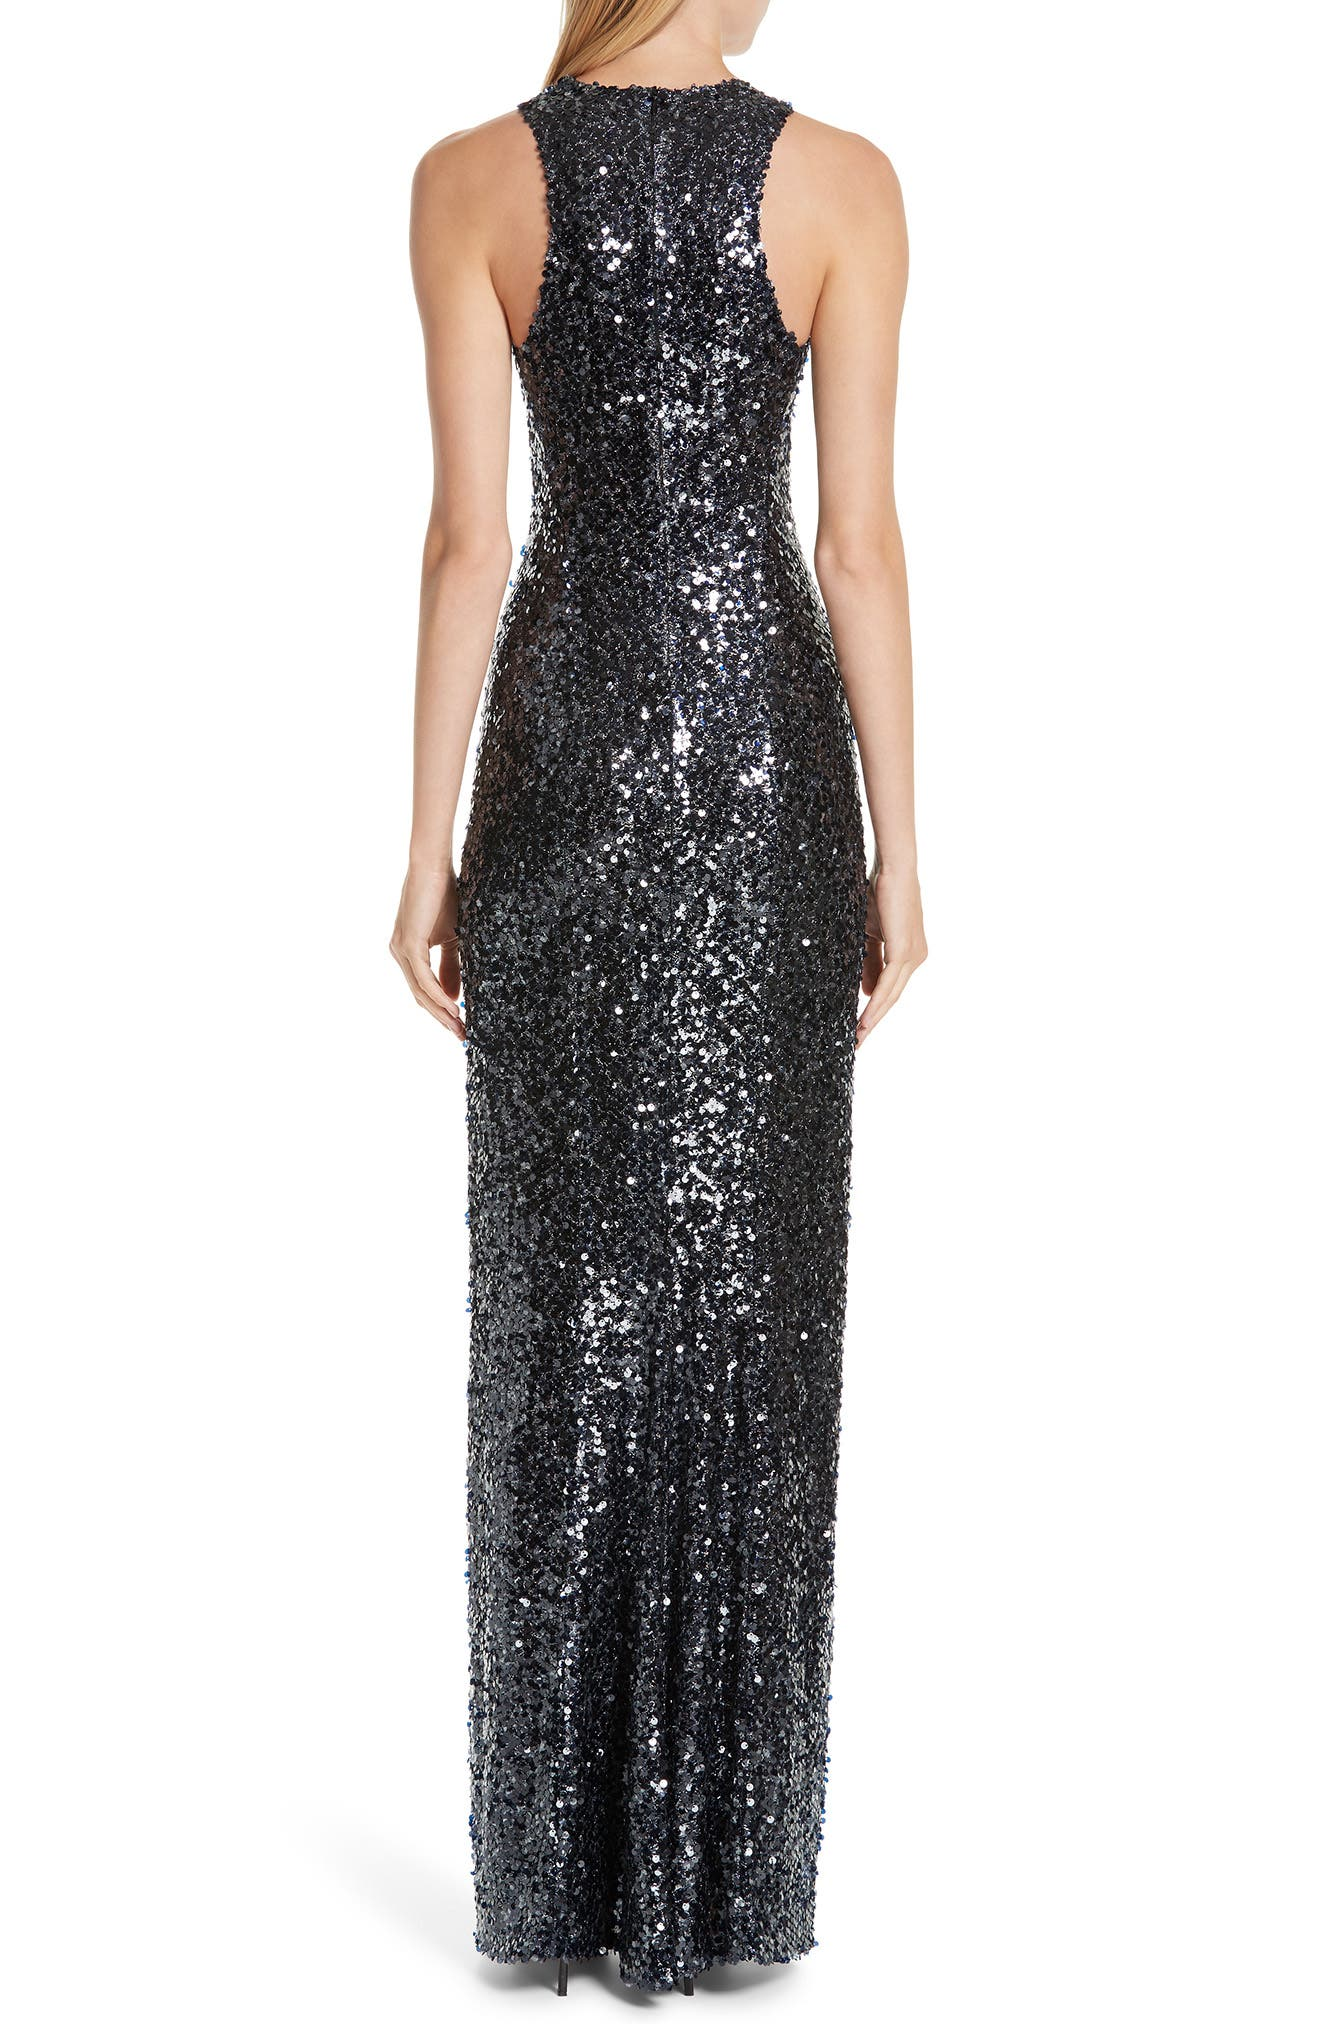 Sequin Racerback Gown,                             Alternate thumbnail 2, color,                             INKY BLUE BLACK